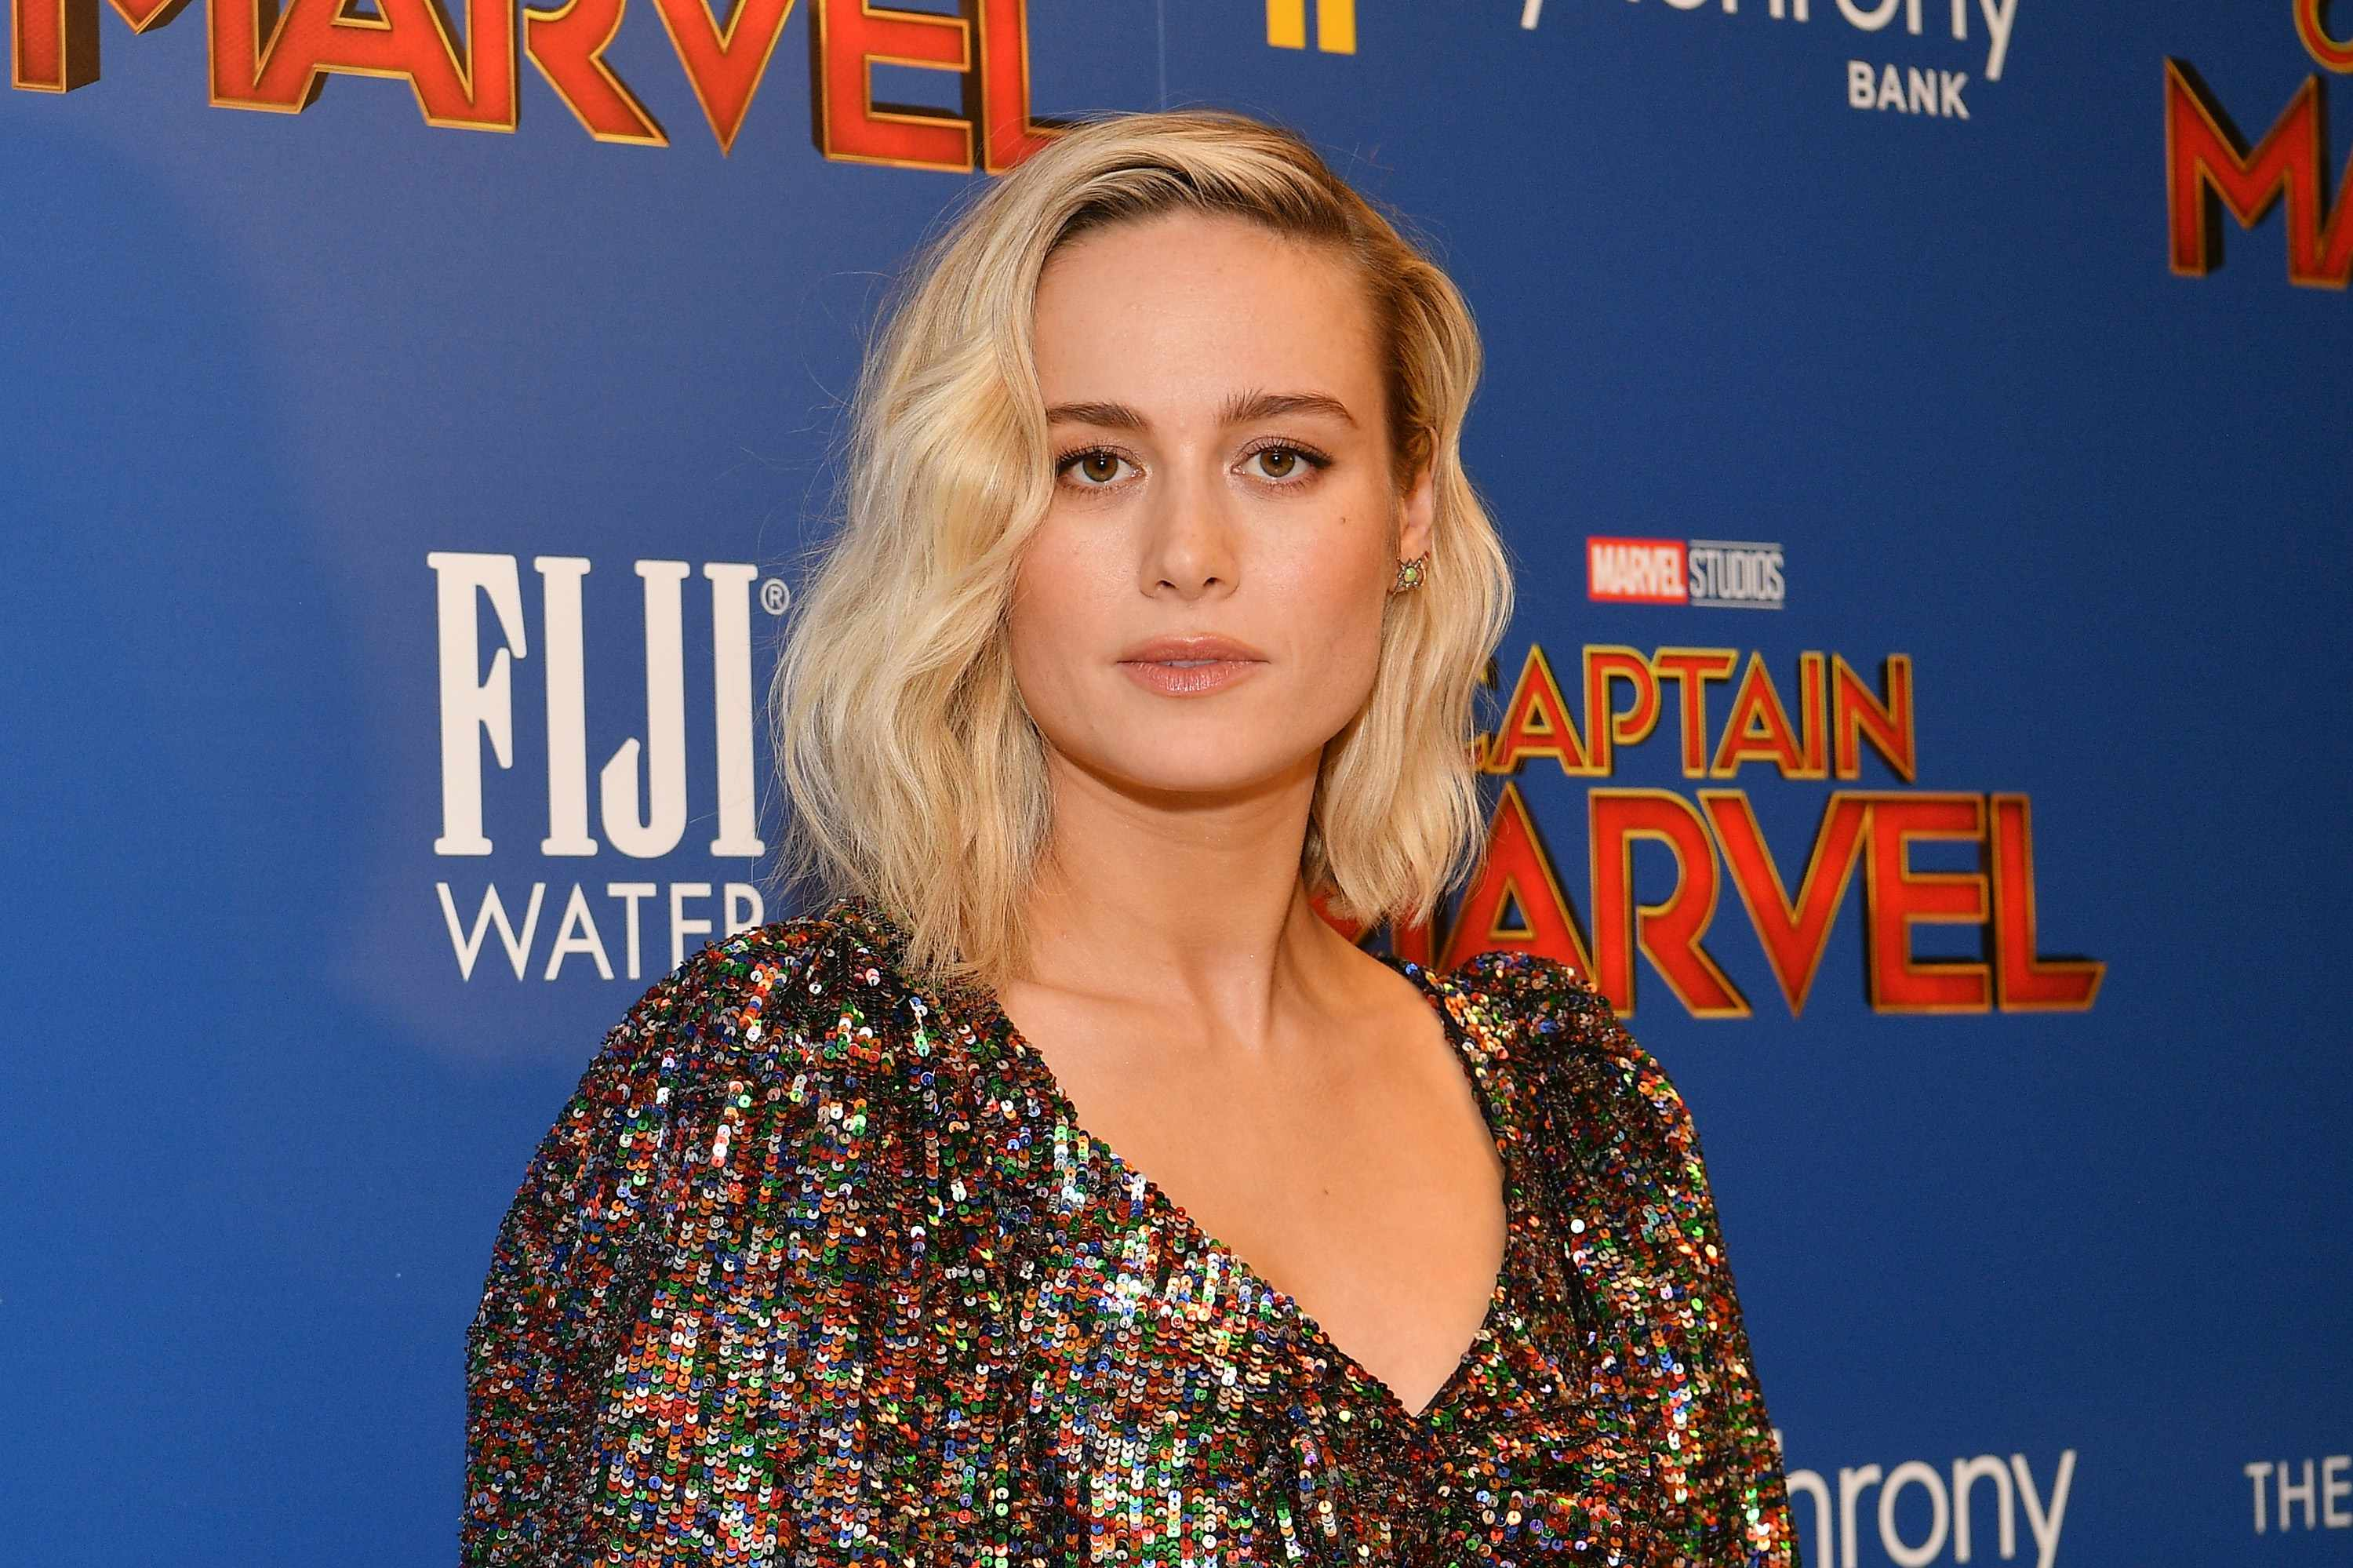 """NEW YORK, NY - MARCH 06:  Brie Larson attends the """"Captain Marvel"""" screening at Henry R. Luce Auditorium at Brookfield Place on March 6, 2019 in New York City.  (Photo by Dia Dipasupil/WireImage)"""